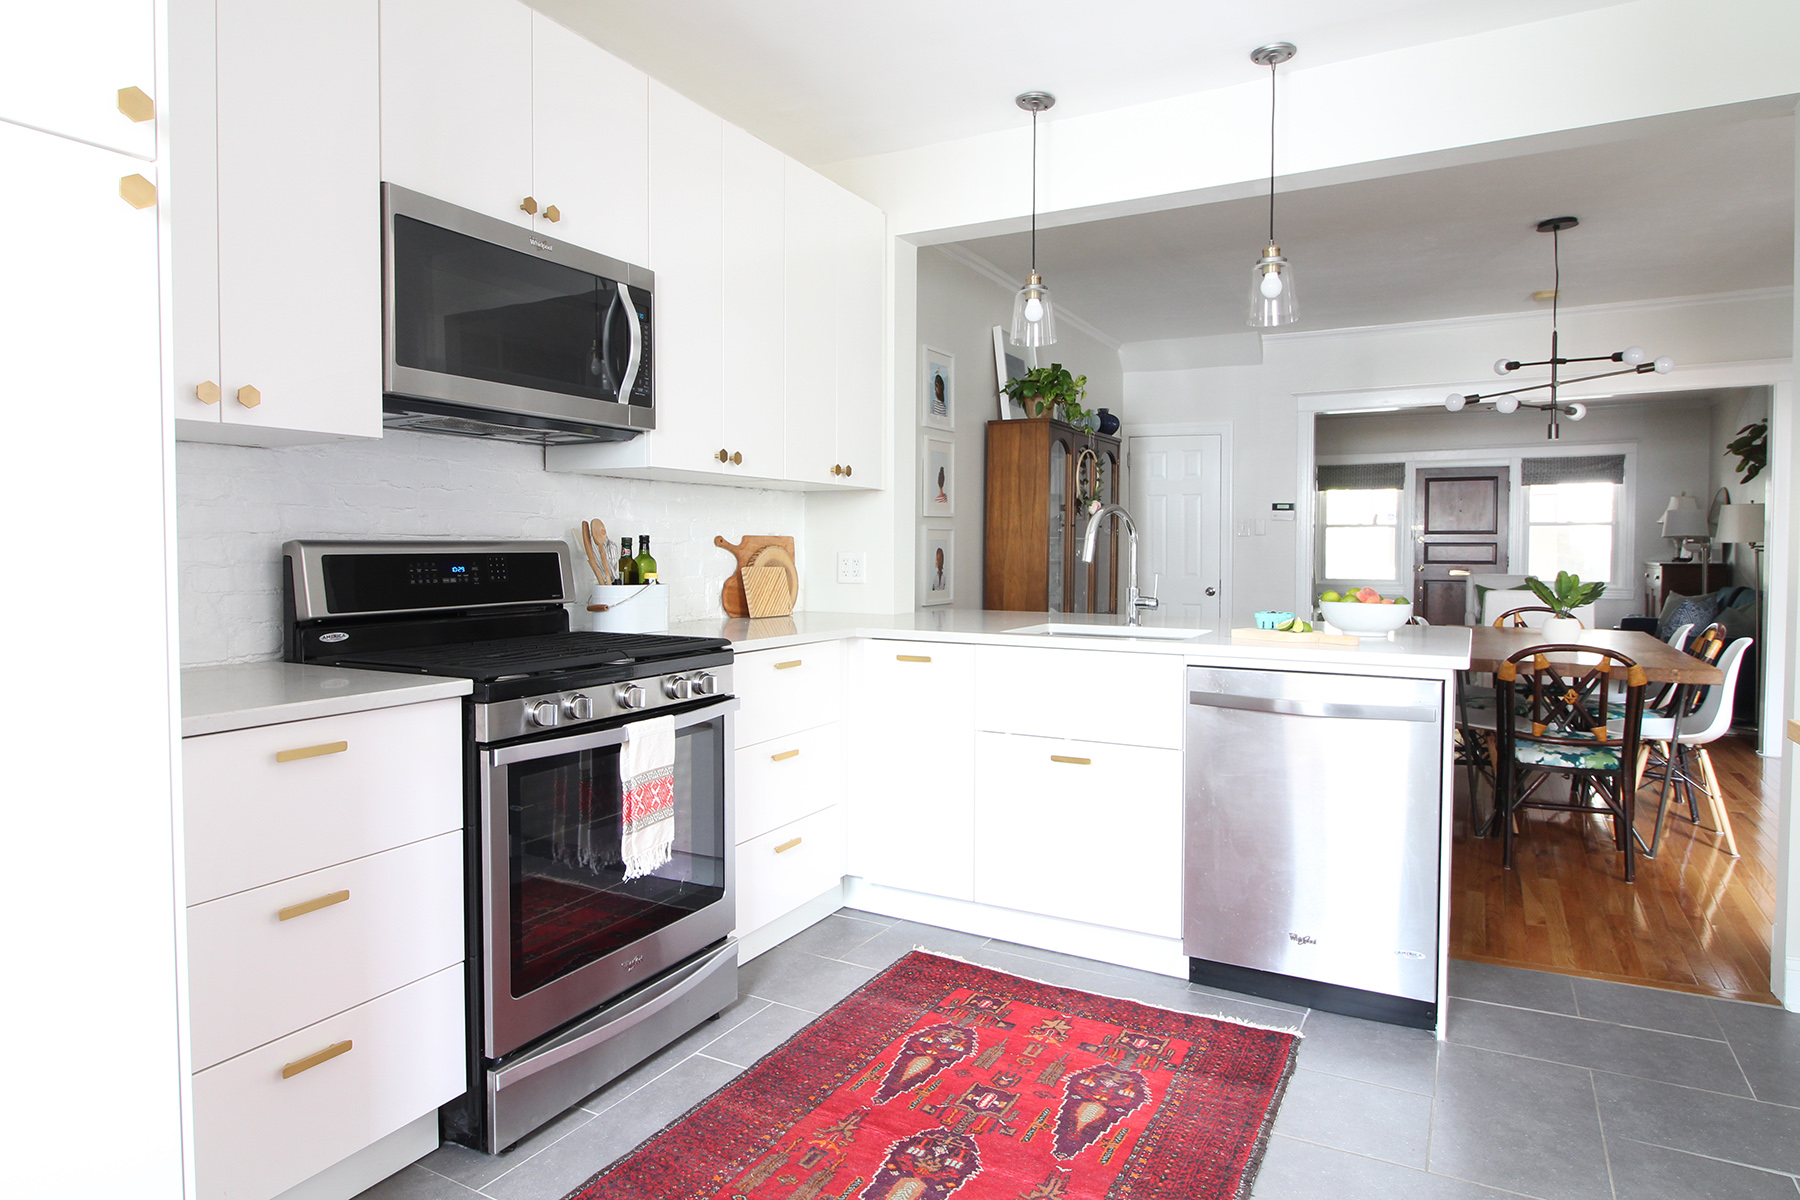 A 1930s row home in Philadelphia gets a big makeover. Come see the before and after of this home's living, dining, and kitchen open floor plan and get ideas for small space city living. Chaney's style is mid-century modern meets traditional that makes for an eclectic, cozy space. IKEA Sektion cabinets and marble-look quartz countertops in a modern kitchen.